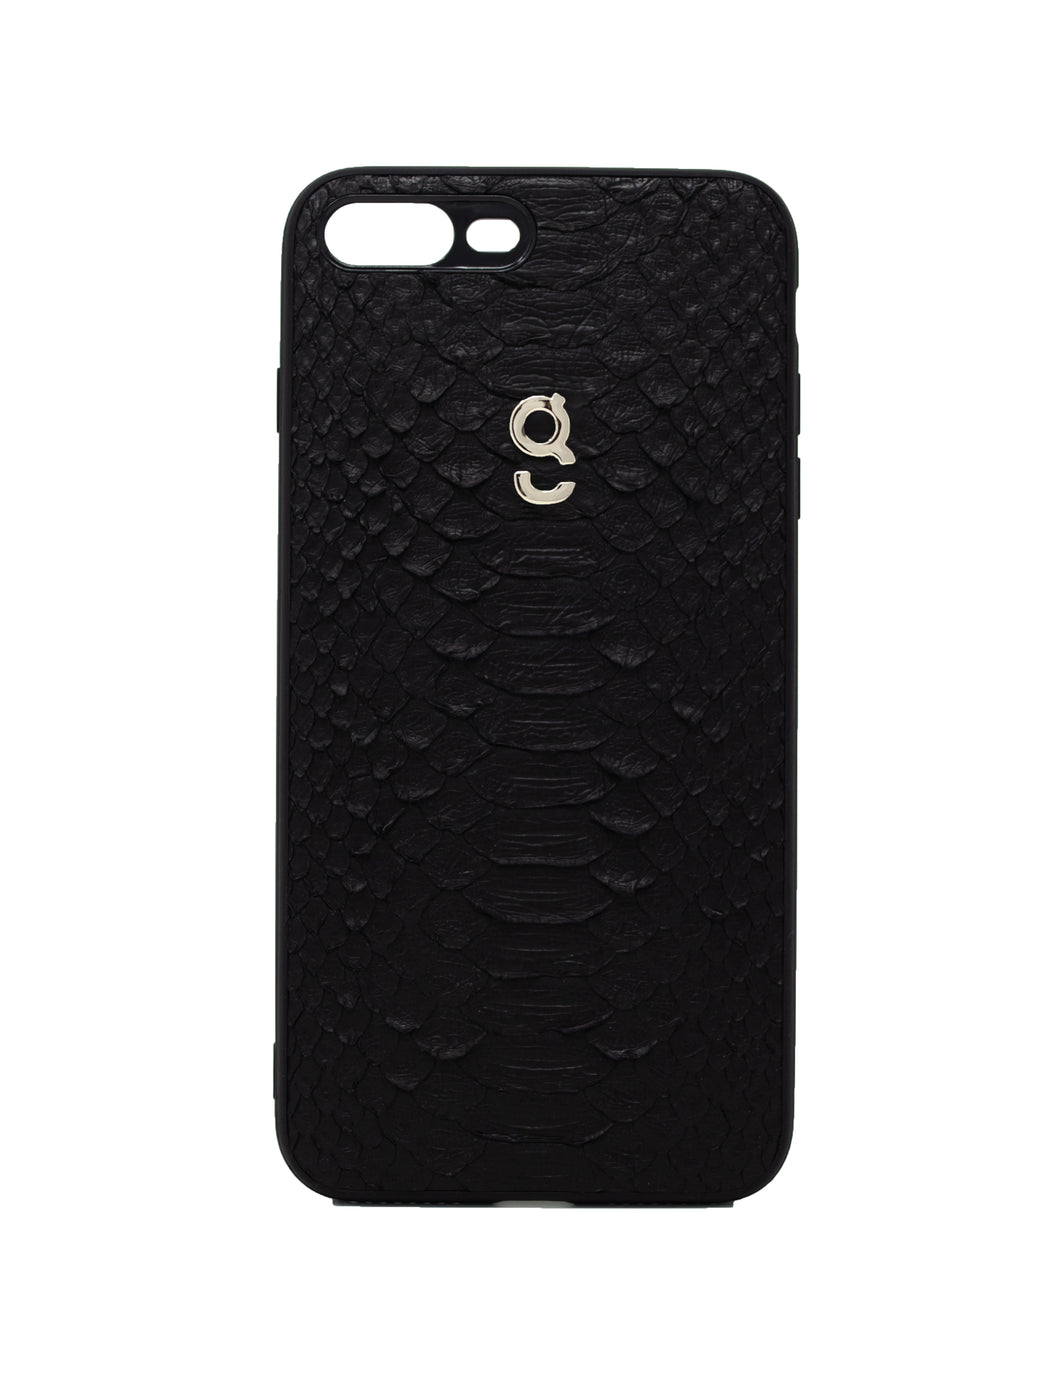 Black maybach - iPhone 8 Plus / 7 Plus case - gcoulee